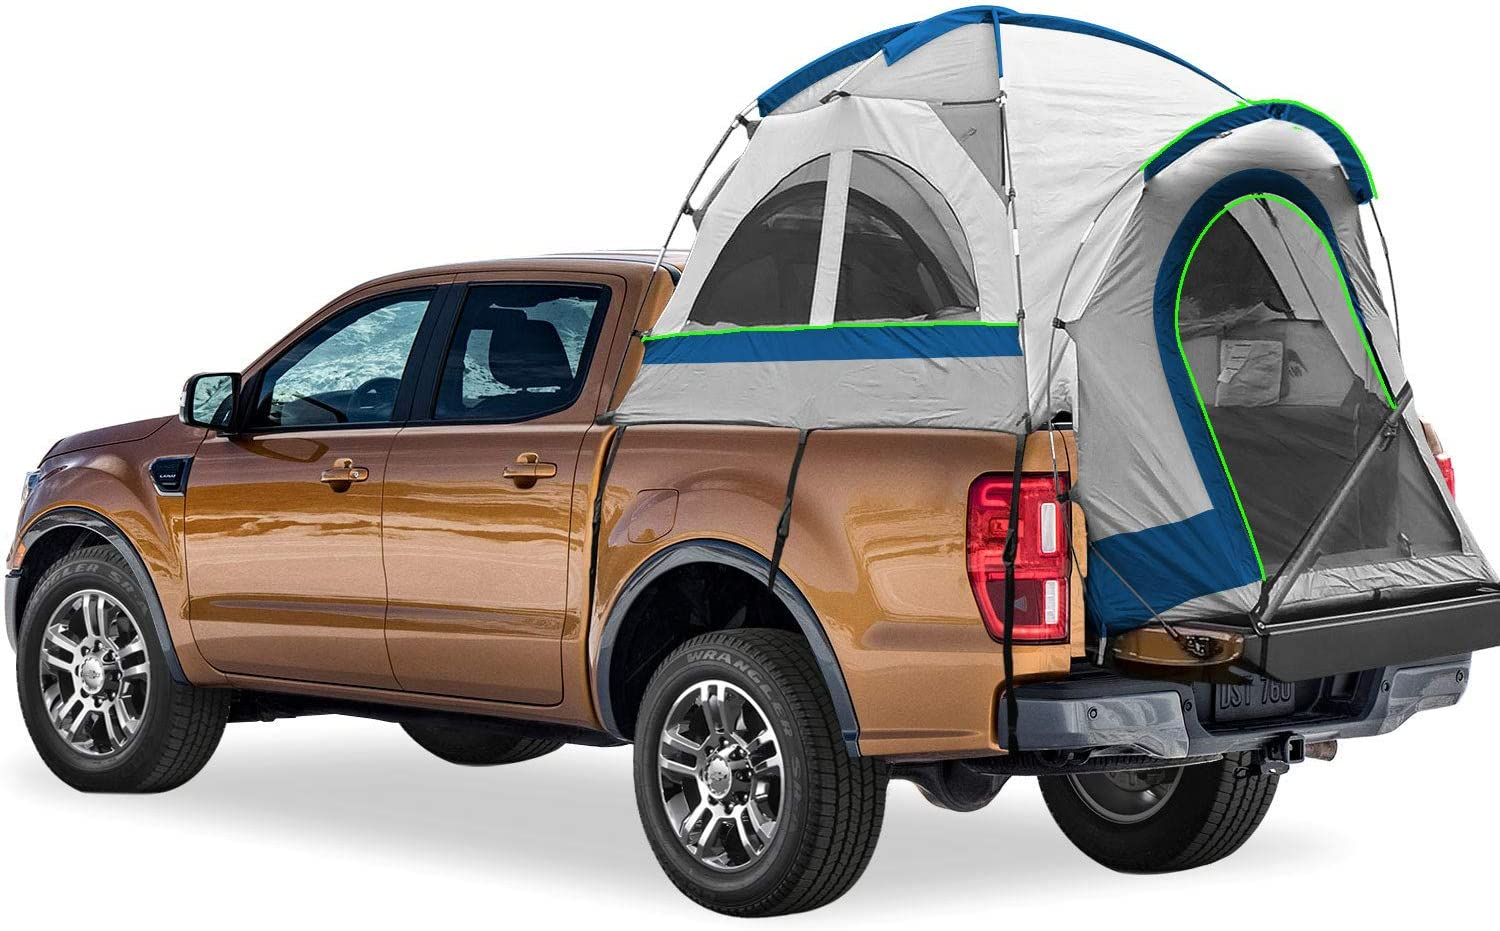 - Gray and Blue 2-Person Sleeping Capacity 66-70 Fits Full Size Truck with Short Bed North East Harbor Pickup Truck Bed Camping Tent Includes Rainfly and Storage Bag 5.5-5.8